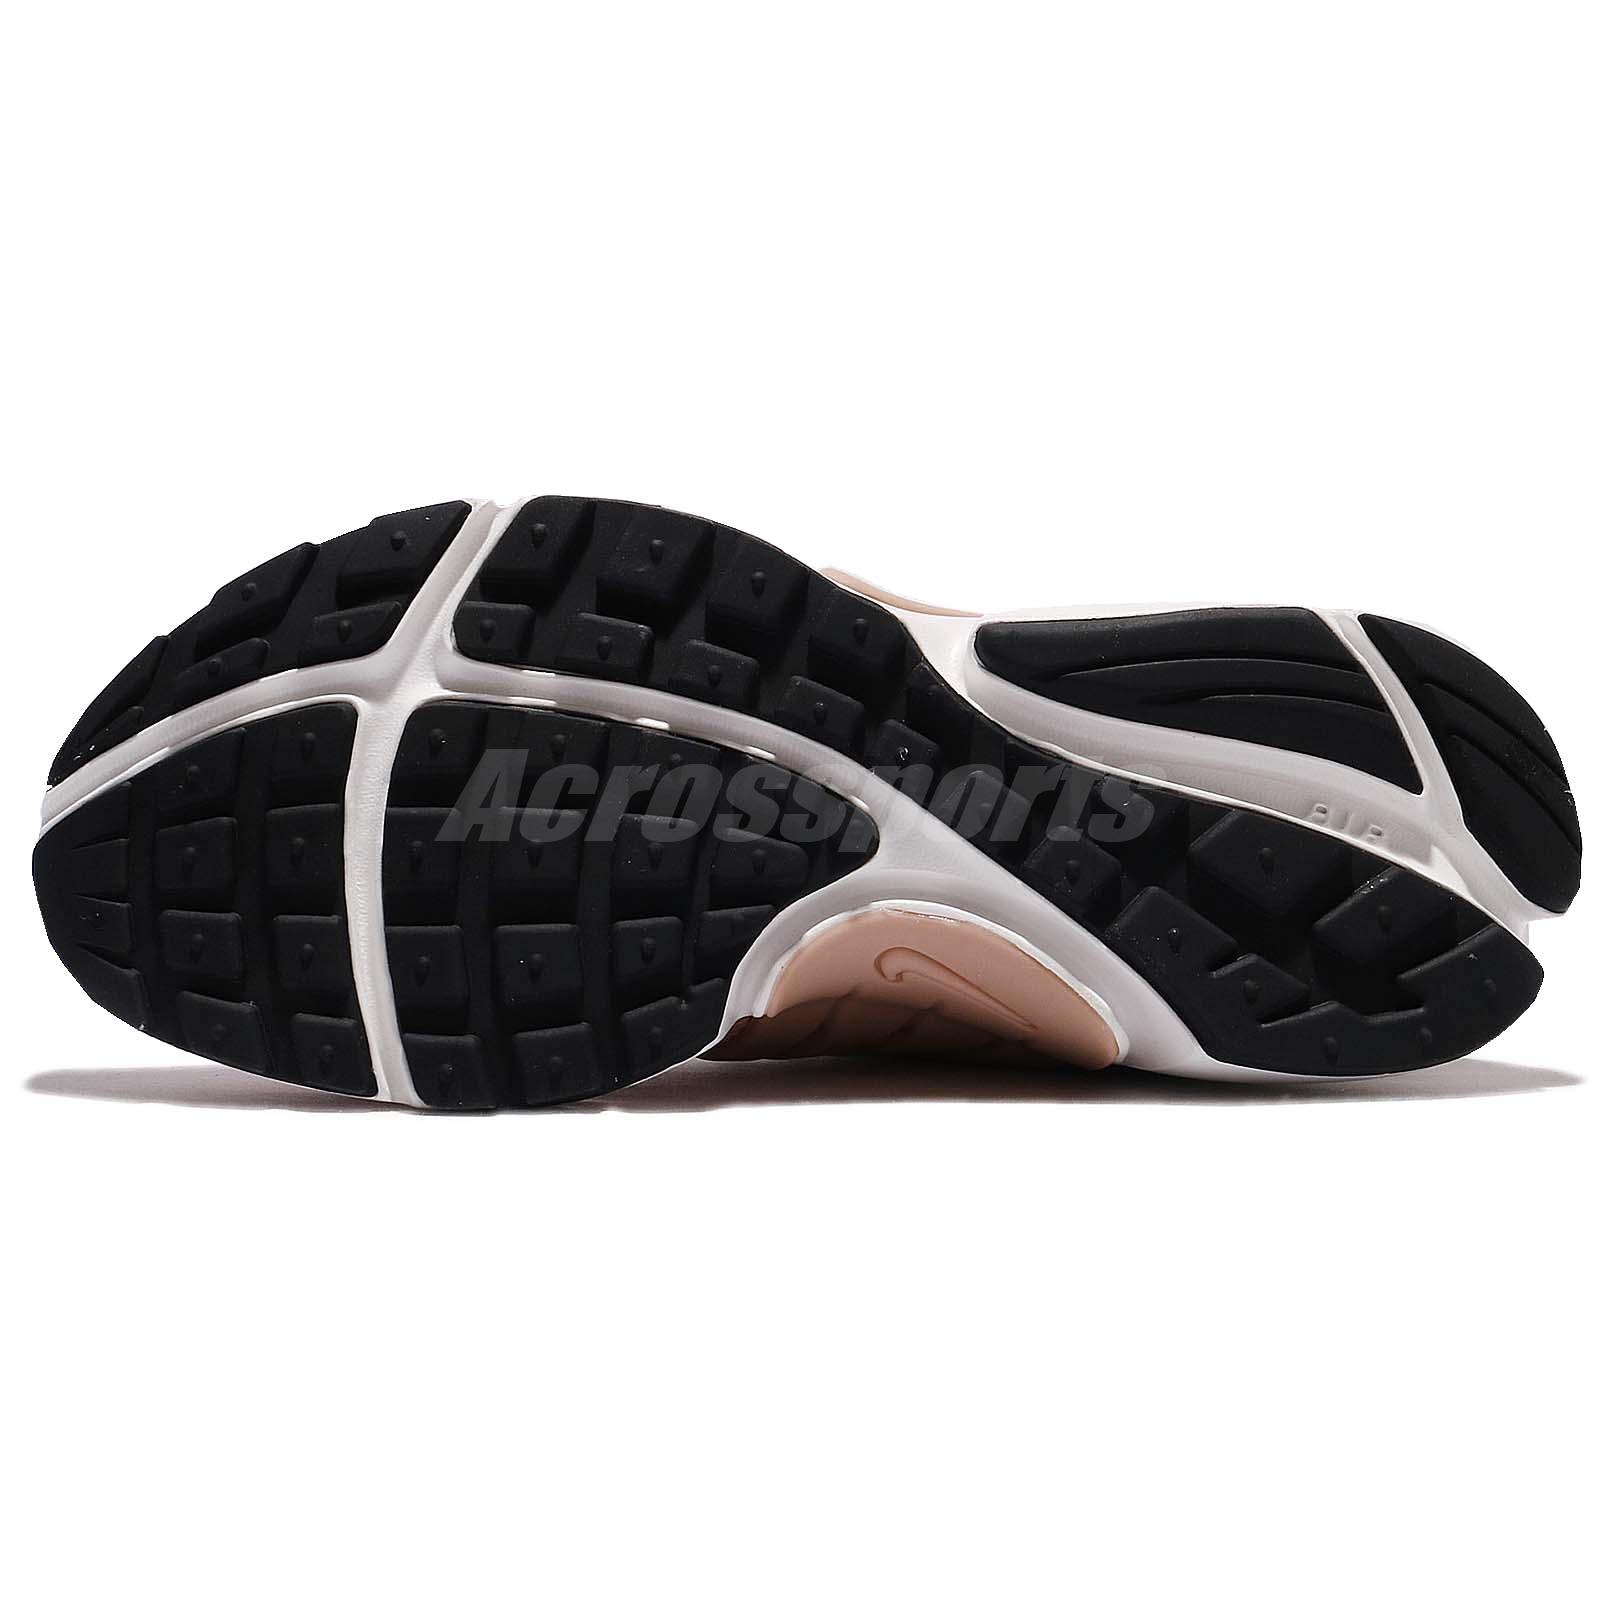 finest selection d0454 a8c82 Nike Wmns Air Presto Port Wine Particle Pink Women Shoes Sneakers ...